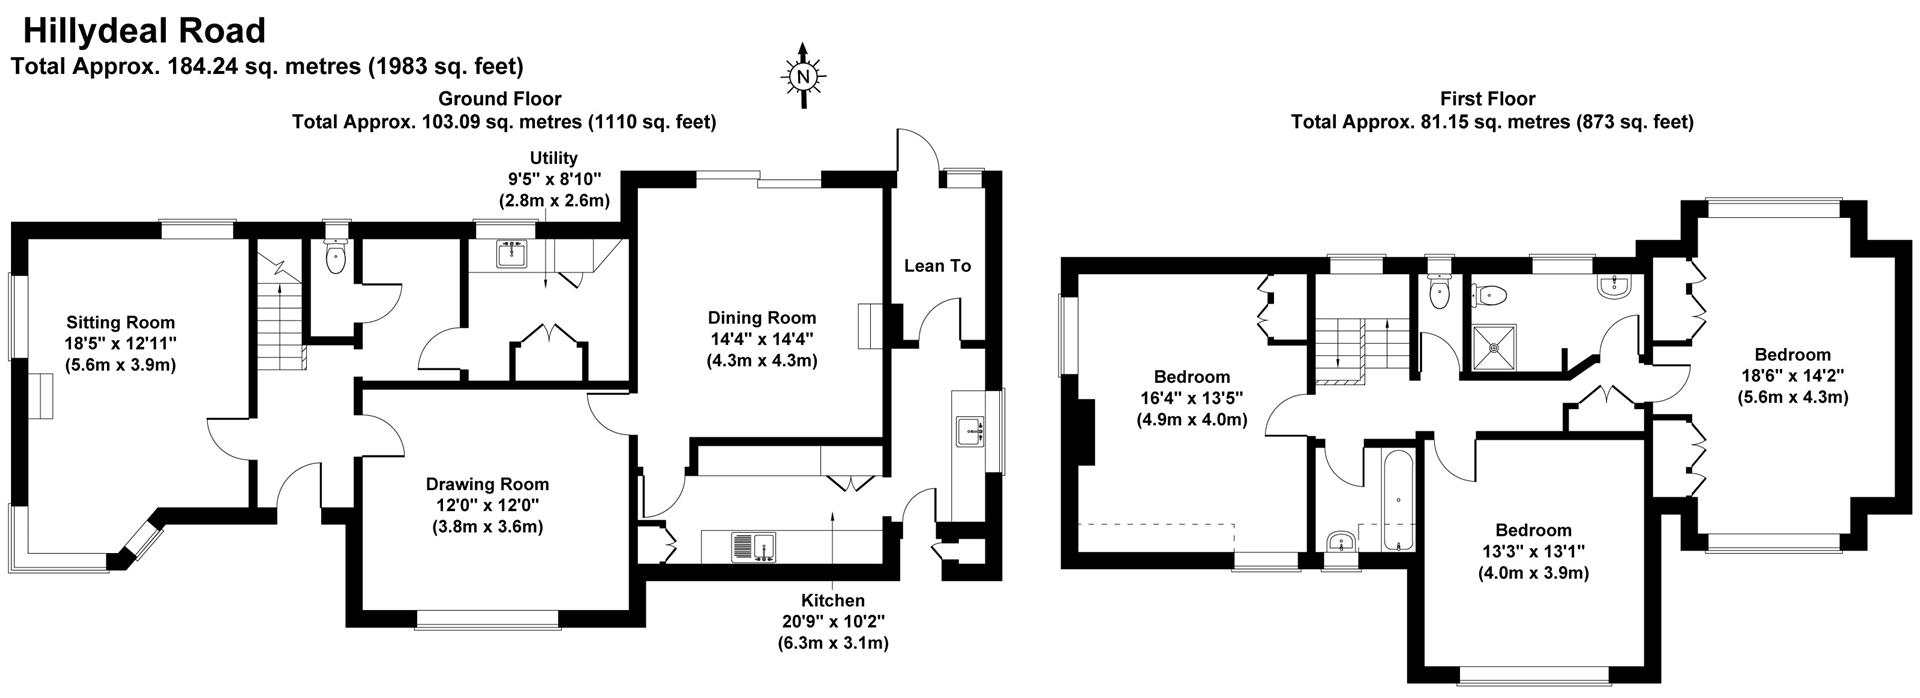 100 100 Top Rated Floor Plans 100 Historical House: top rated floor plans